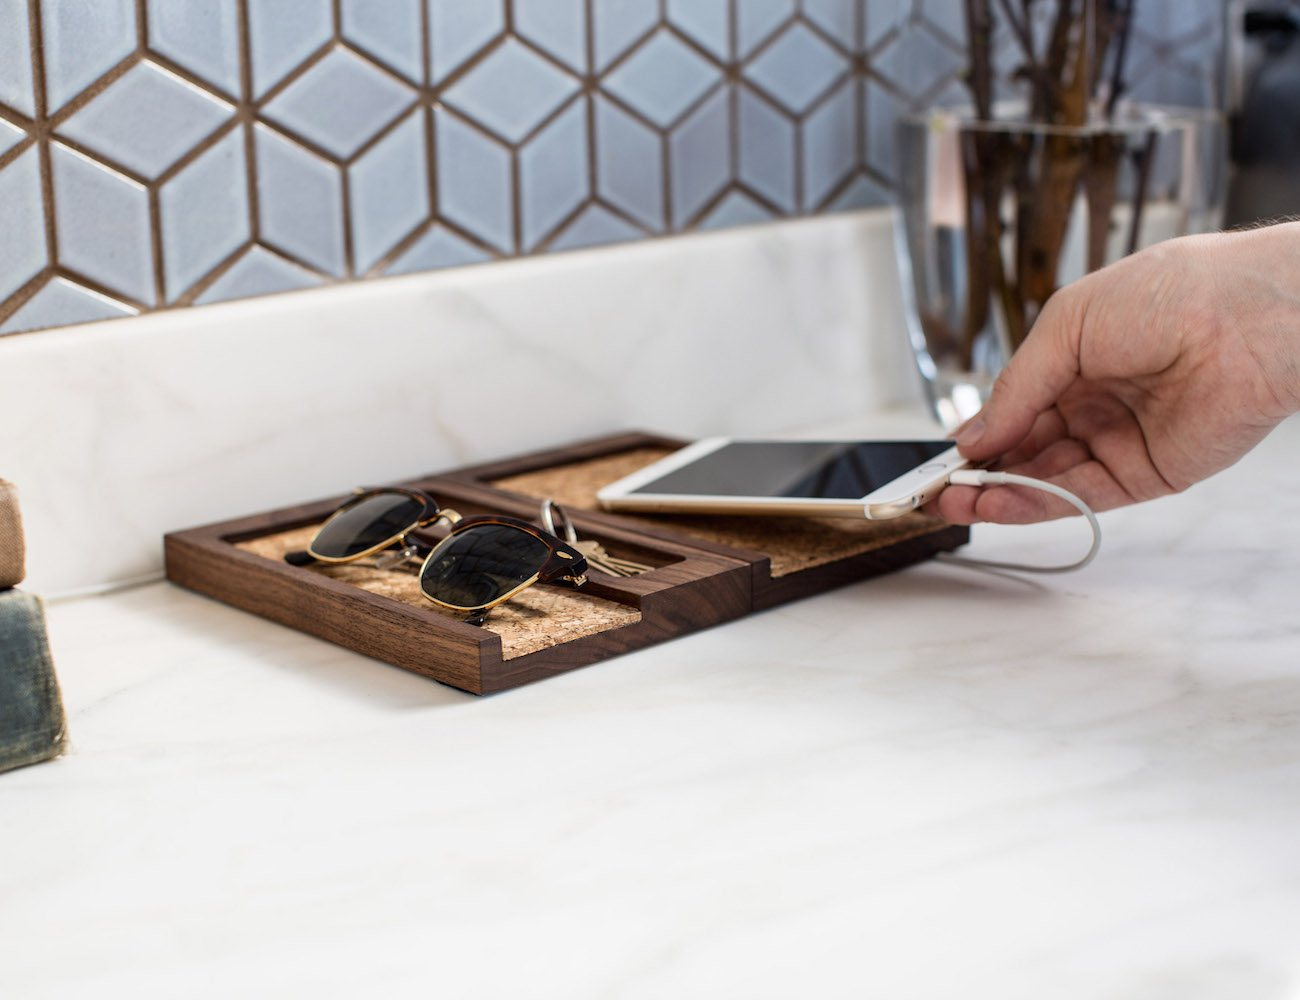 Composure Collection by Rest – Magnetically Connected Desktop Organizer